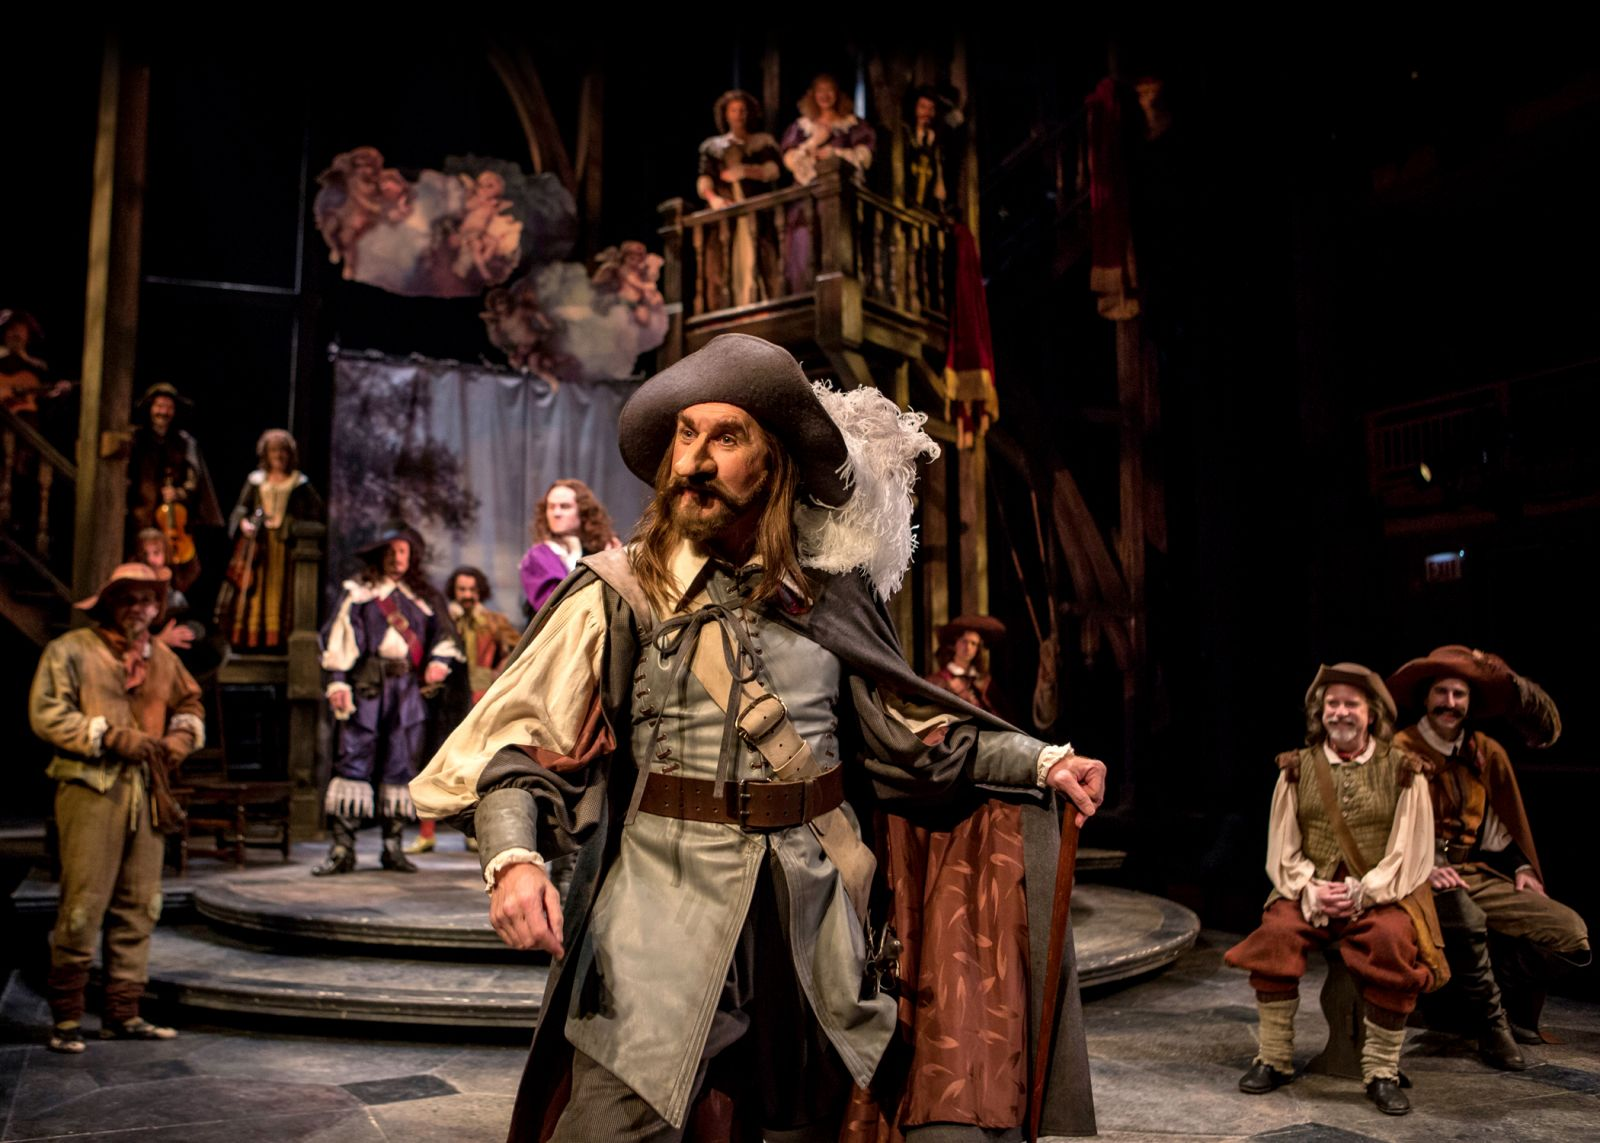 chicago theater review cyrano de bergerac chicago shakespeare harry groener in chicago shakespeare s production of cyrano